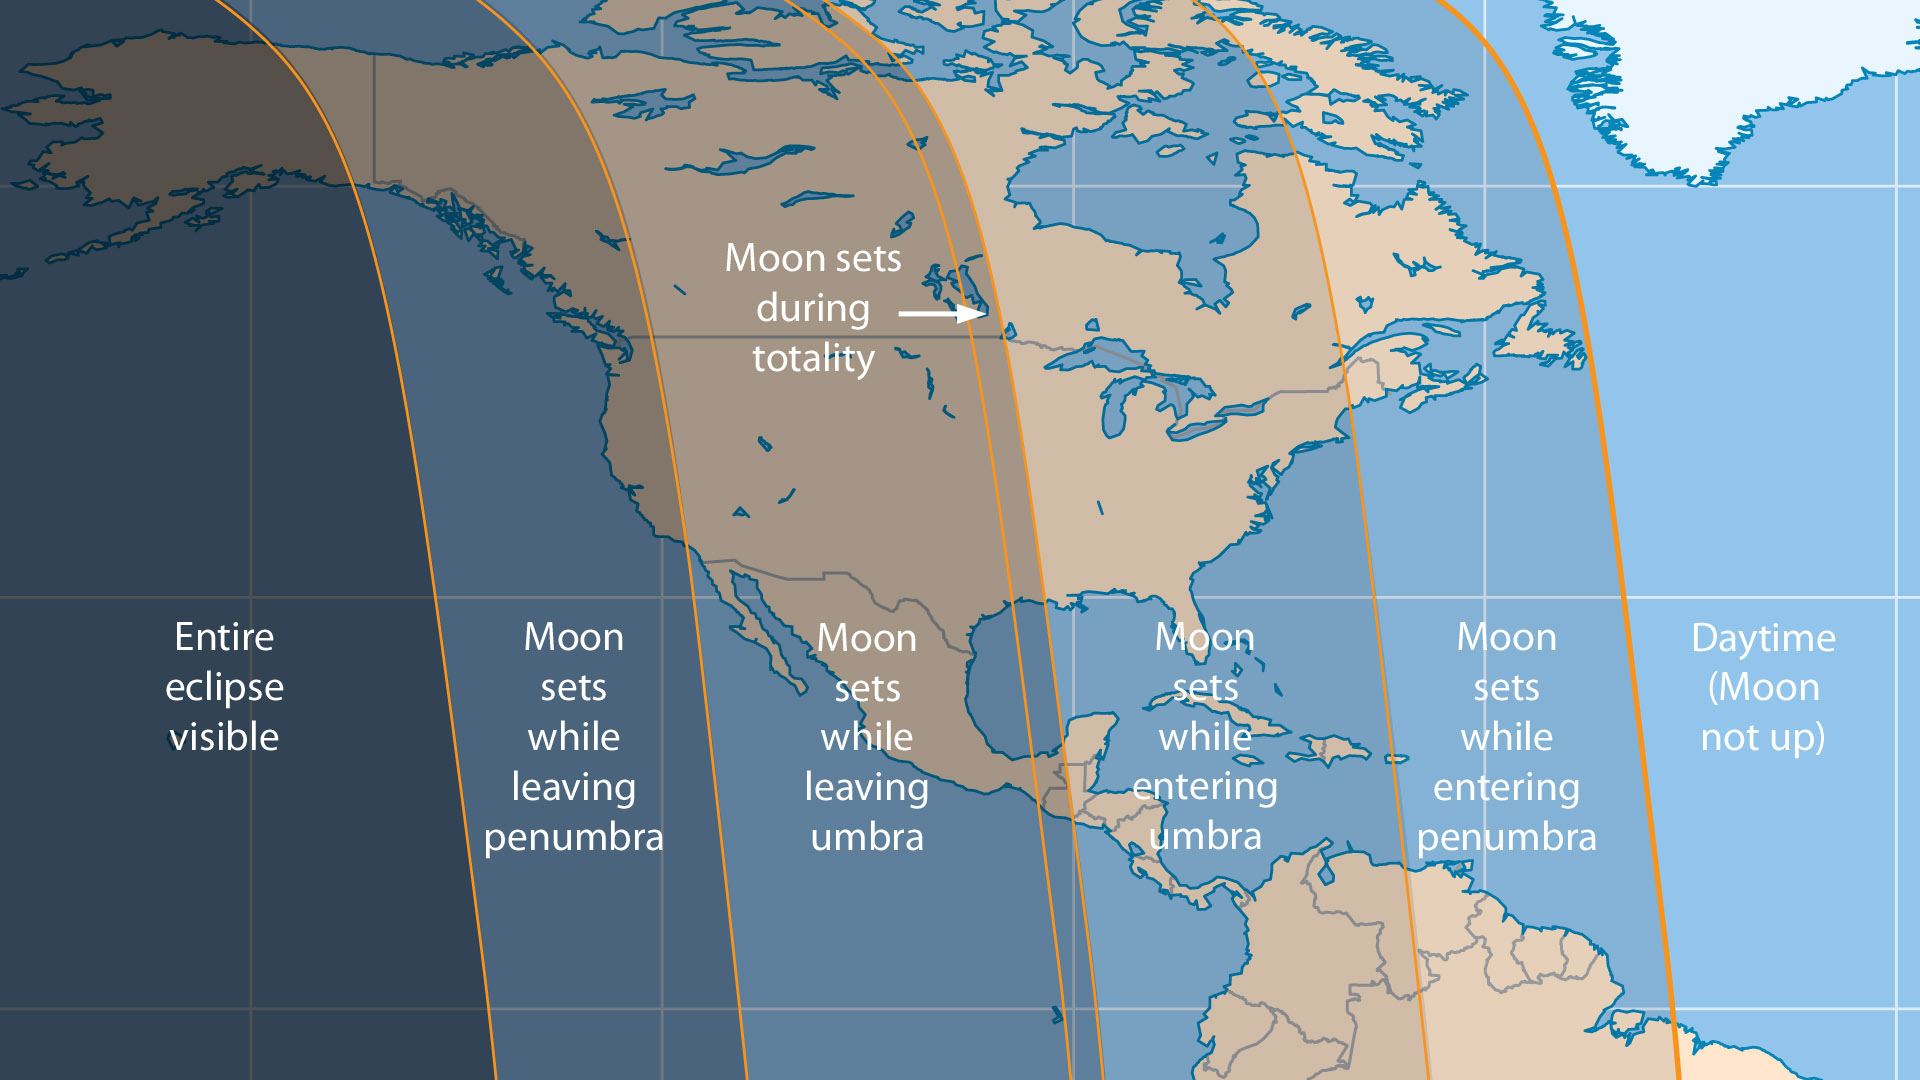 April 2015 lunar eclipse visibility